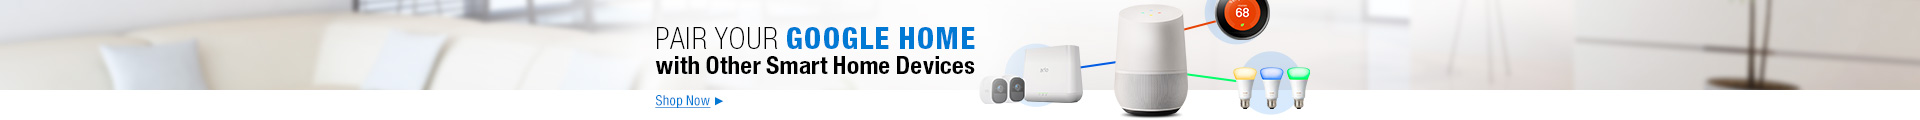 Google home with other smart home devices